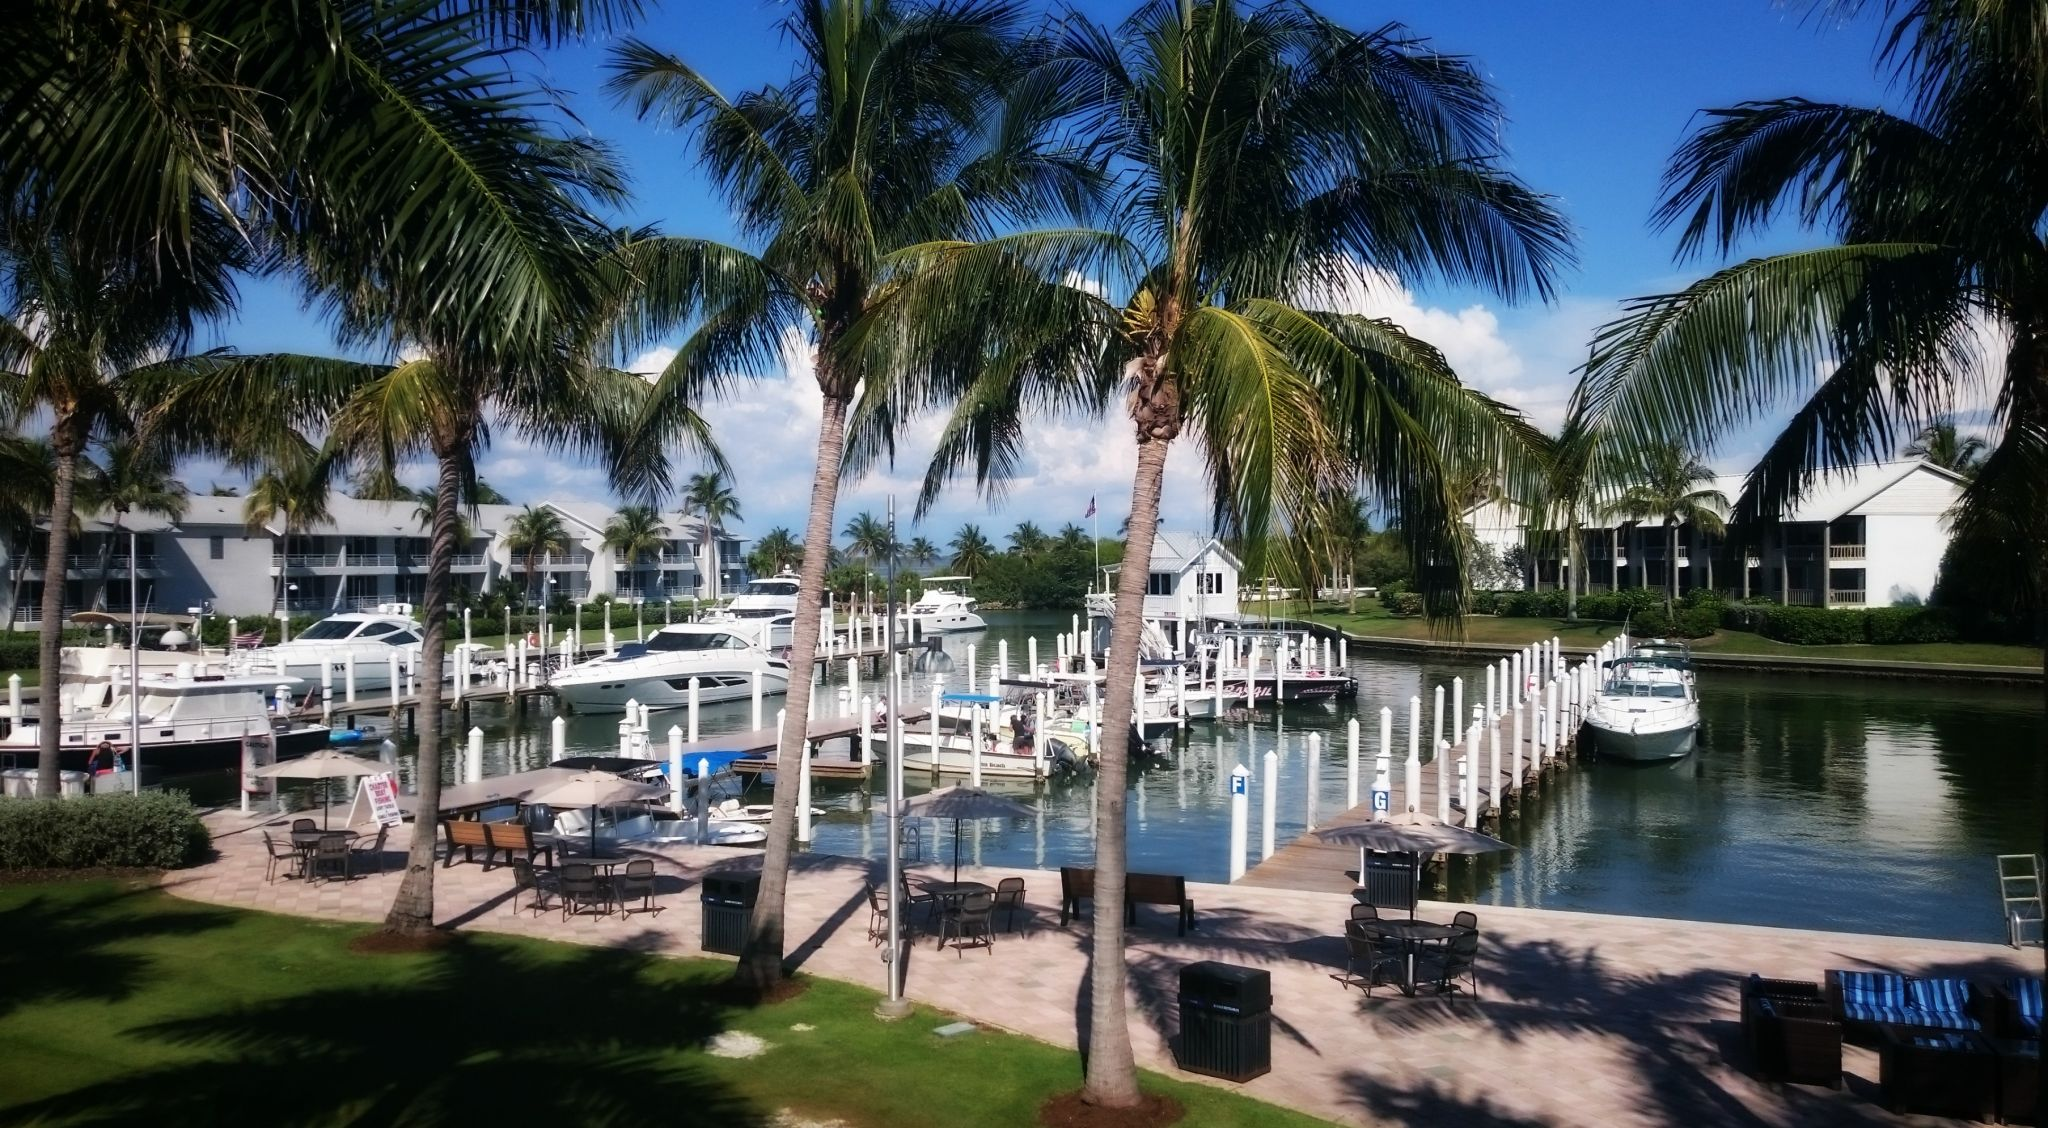 South Seas Island Resort Captiva Island Florida Beyond